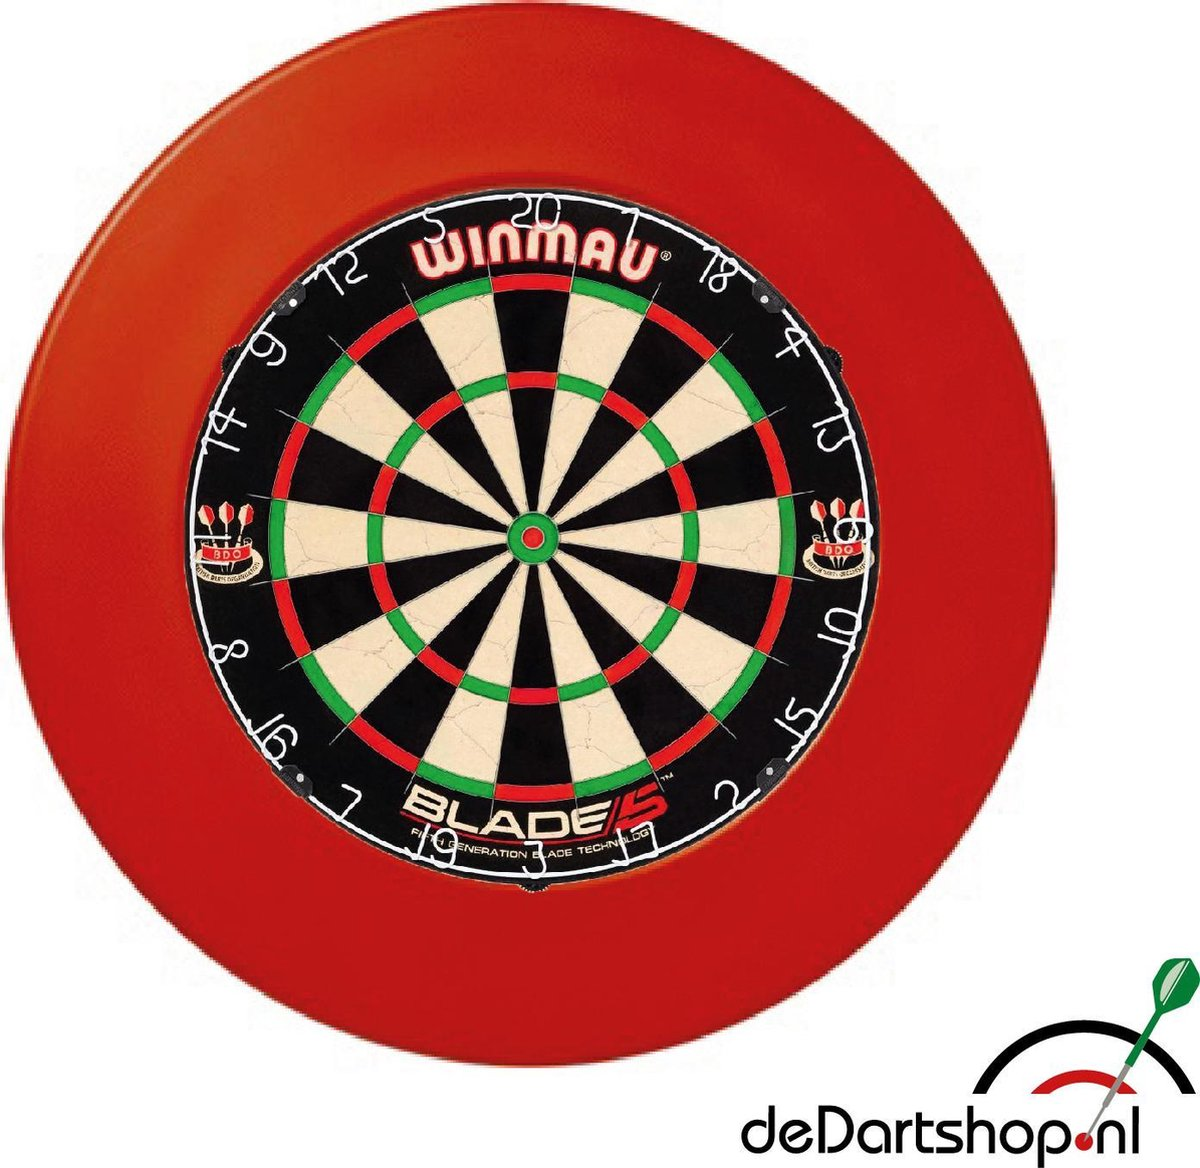 Winmau Blade 5 - Plus Surround Ring Rood - Complete PROFESSIONELE dartset - dartbord